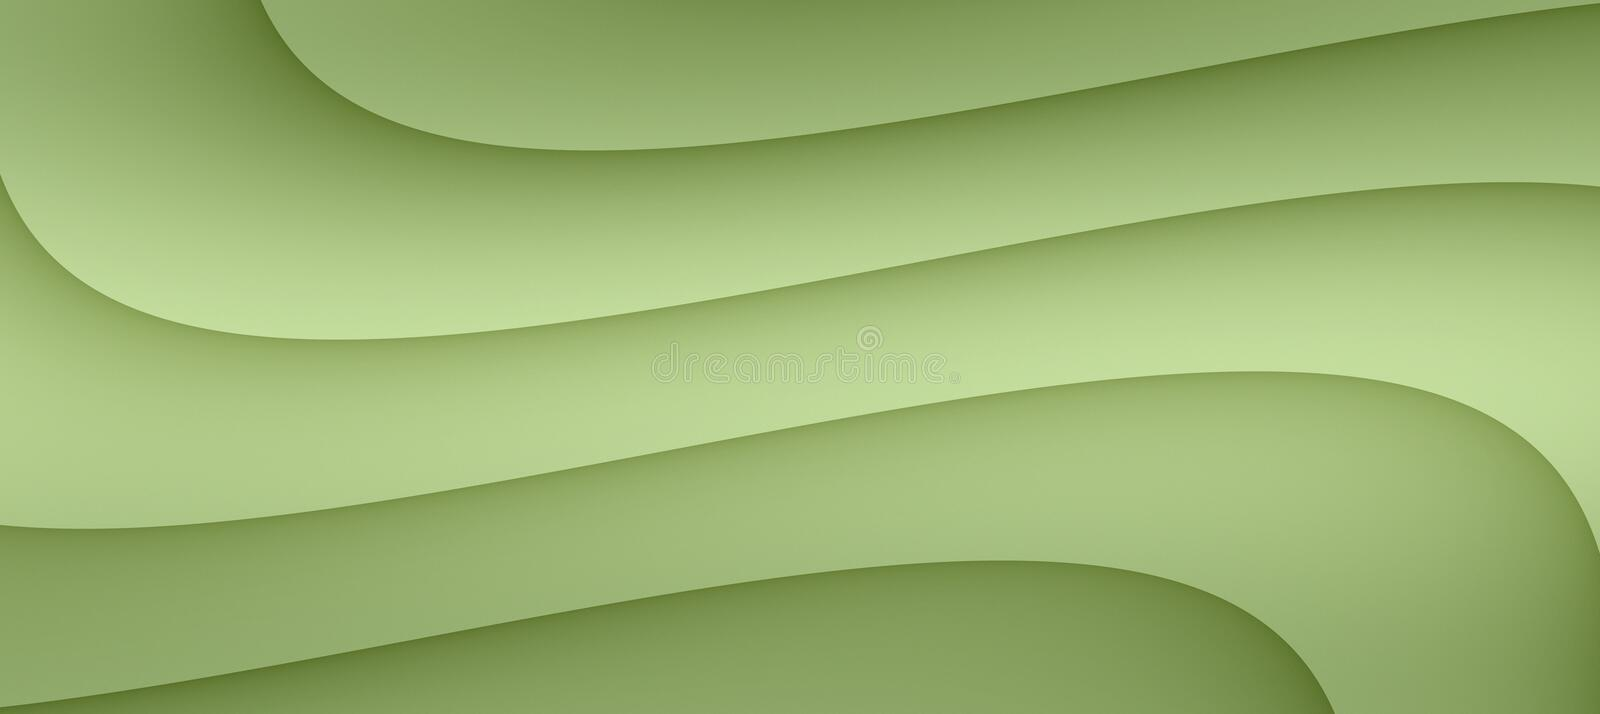 High resolution smooth flowing curves abstract background illustration in shades of muted pale moss green stock illustration